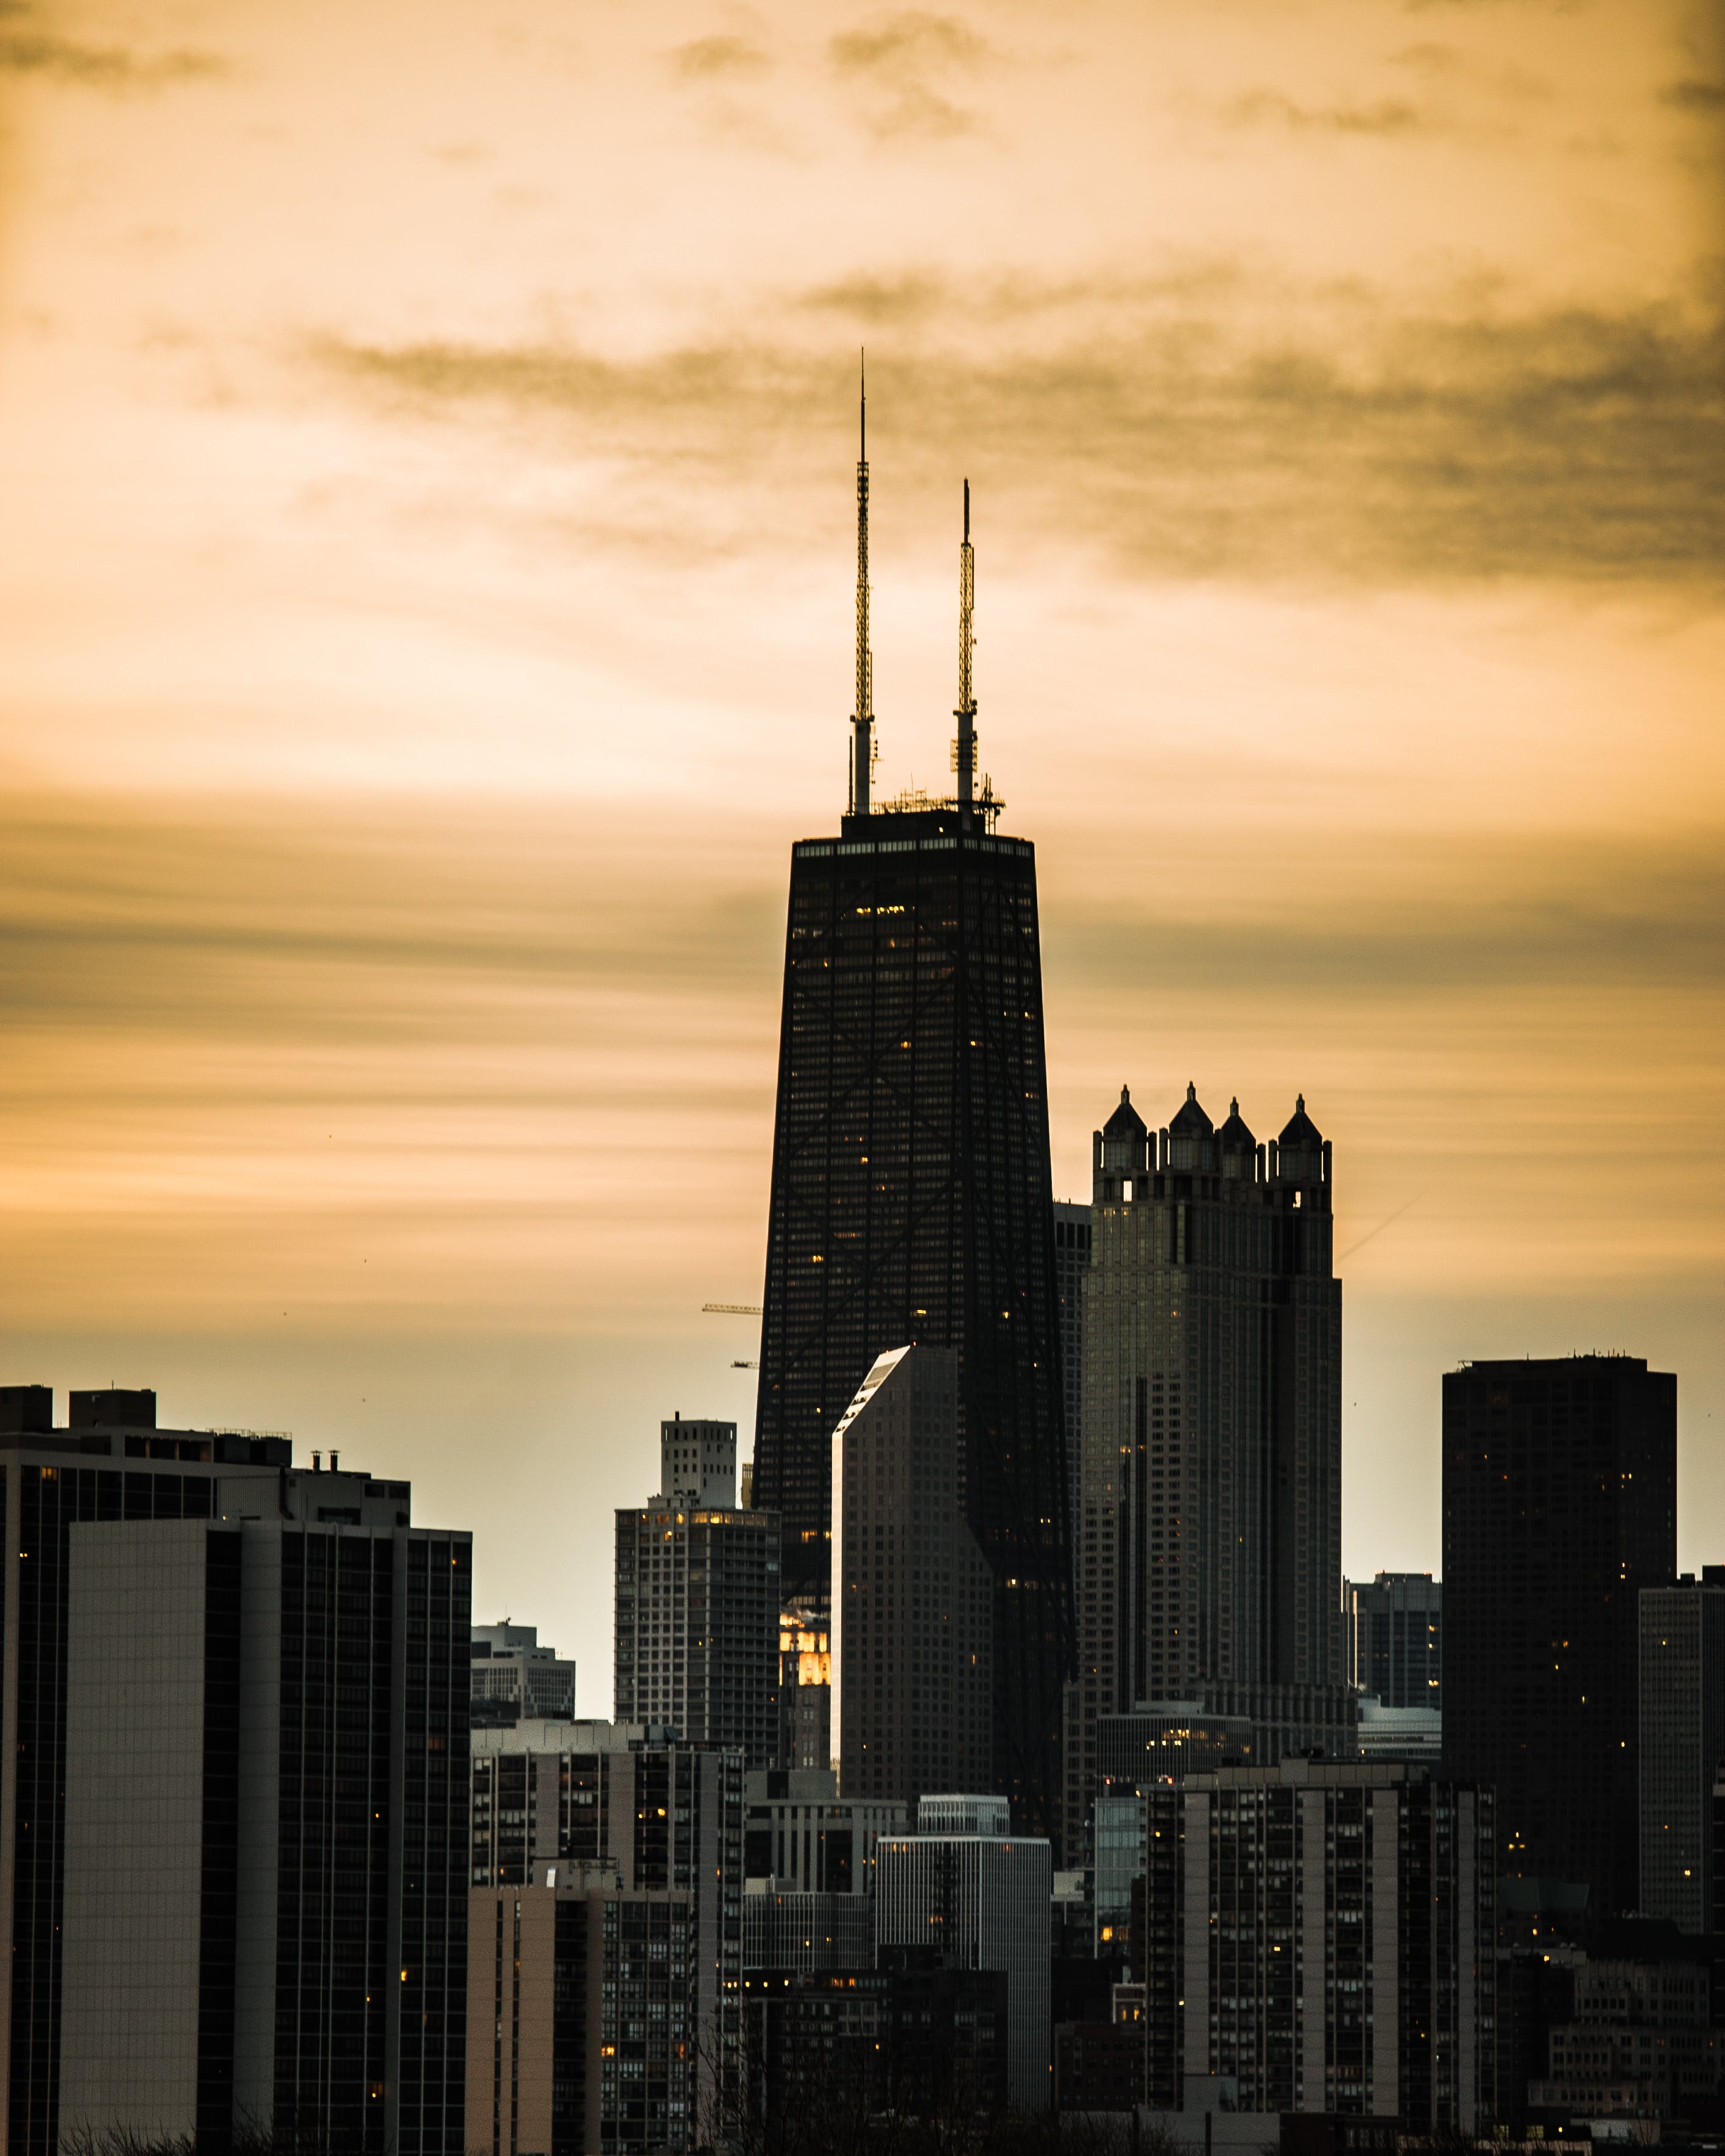 Sunset over City Buildings